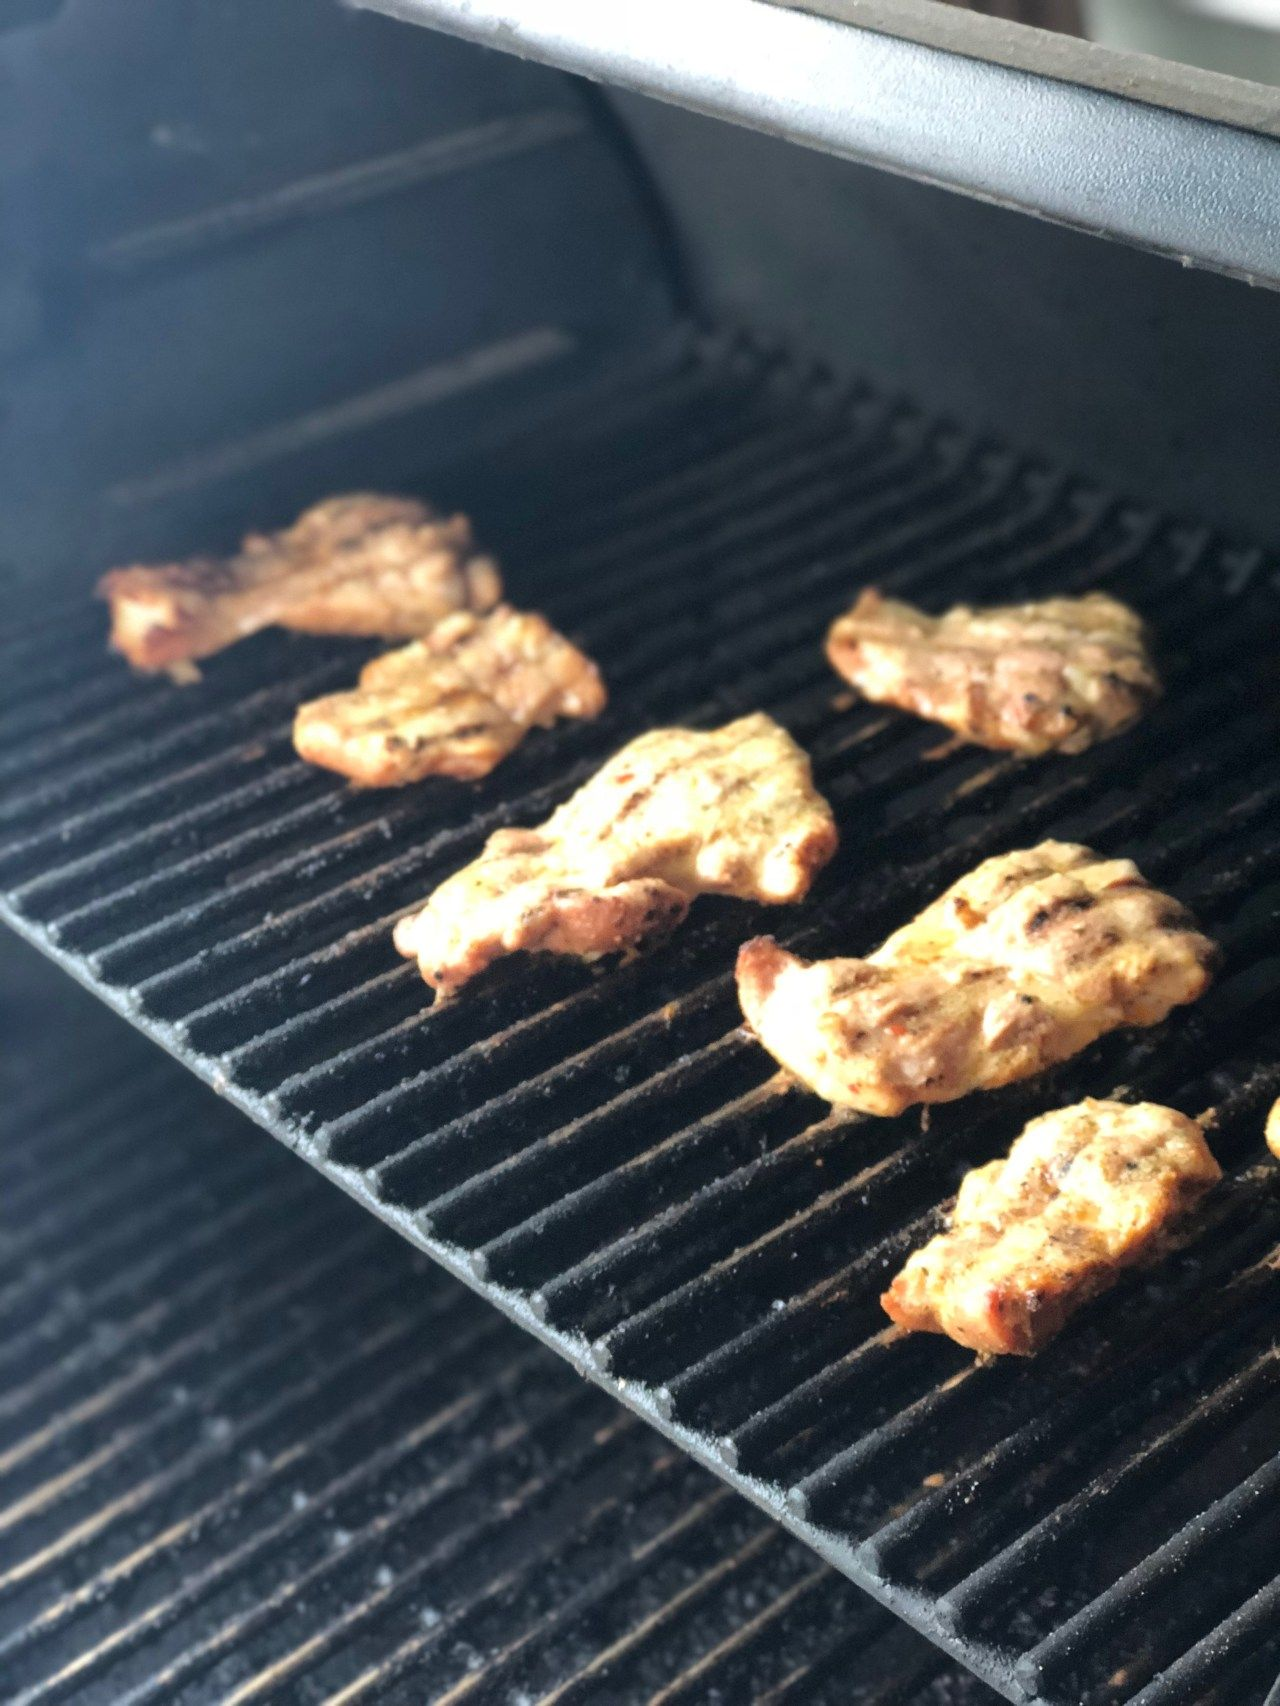 Frozen to fabulous smoky grilled chicken thighs on the